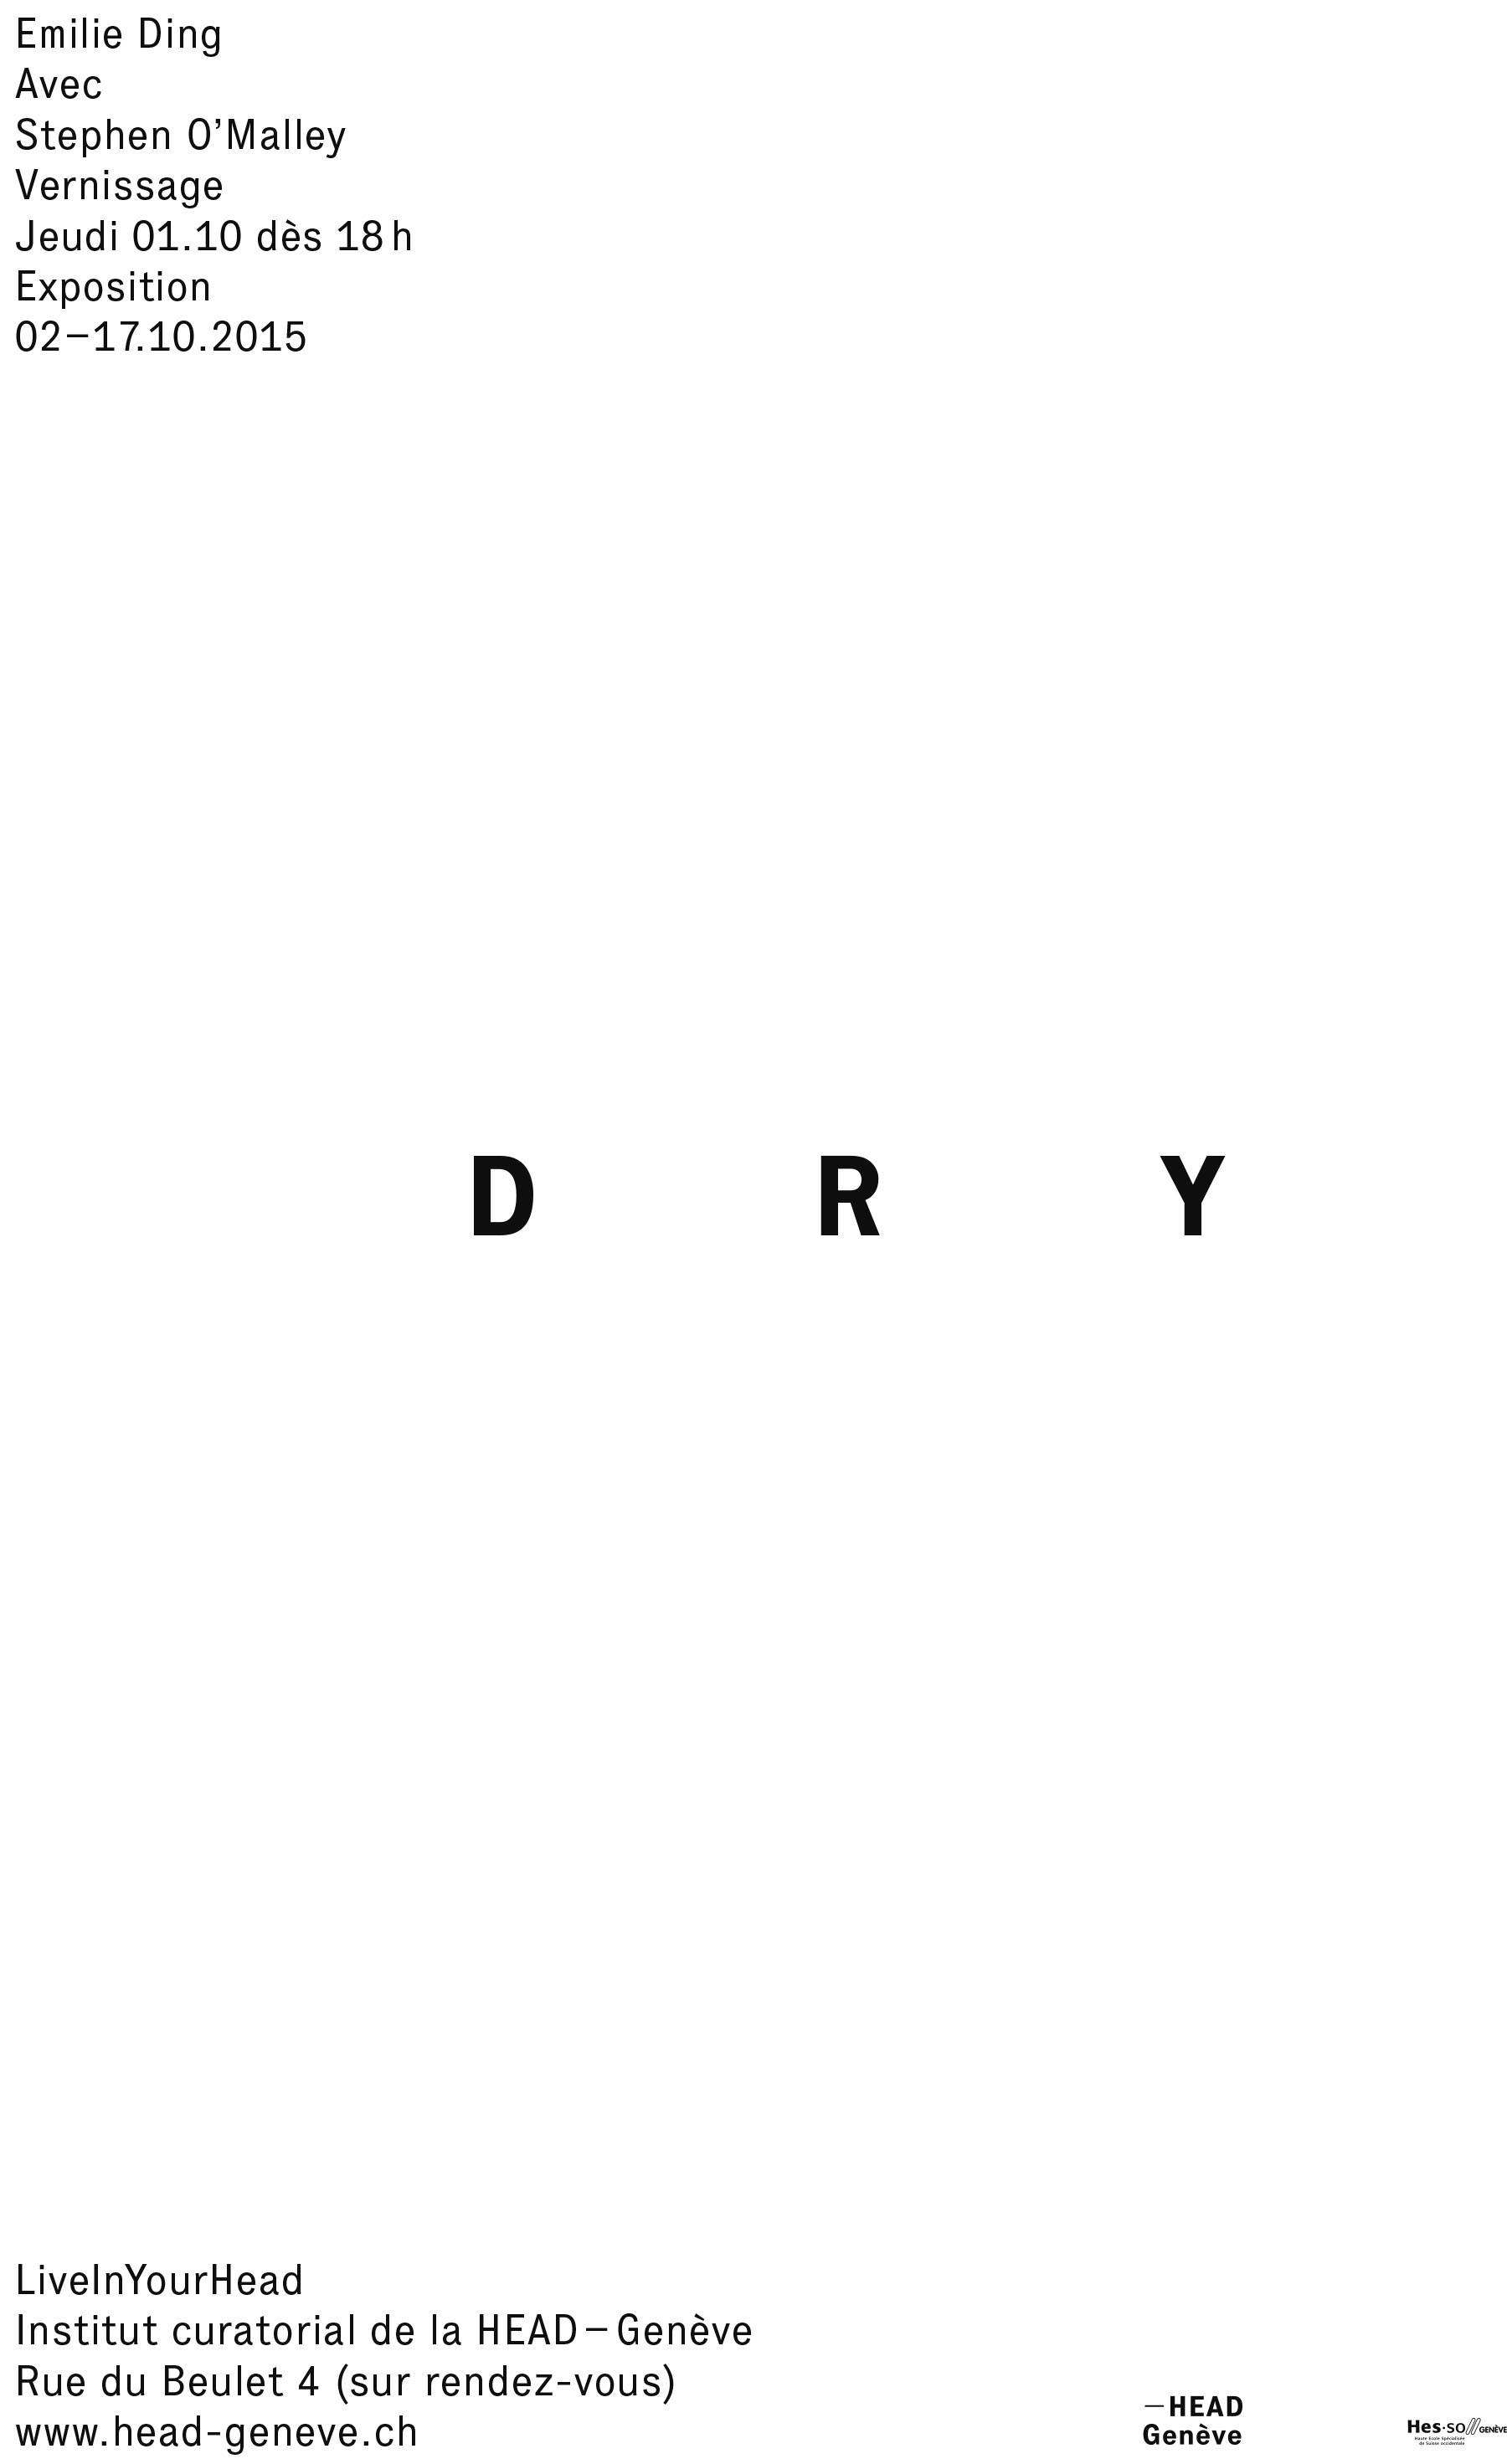 D R Y - Emilie Ding with Stephen O'Malley - Opening 01 OCT 2015 at 6 pm at Live In Your Head - Geneva